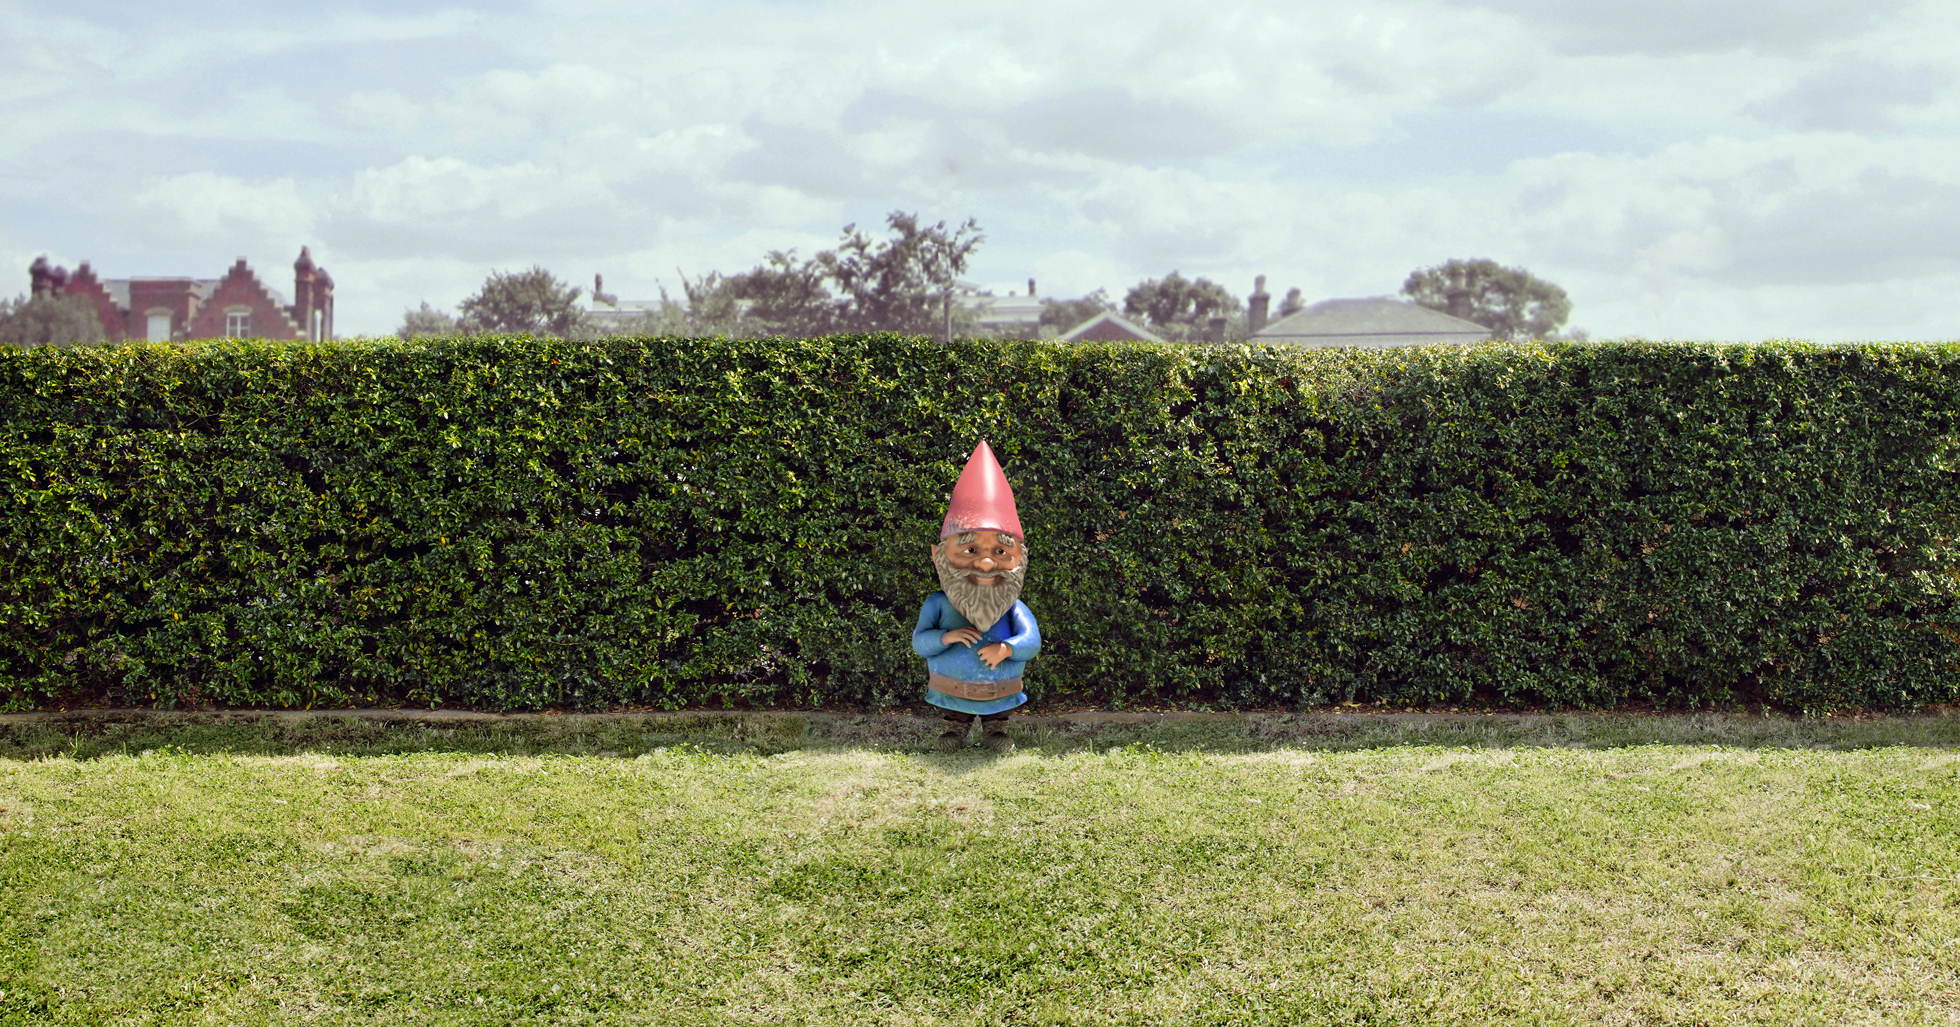 Garden gnome next to a home's lawn